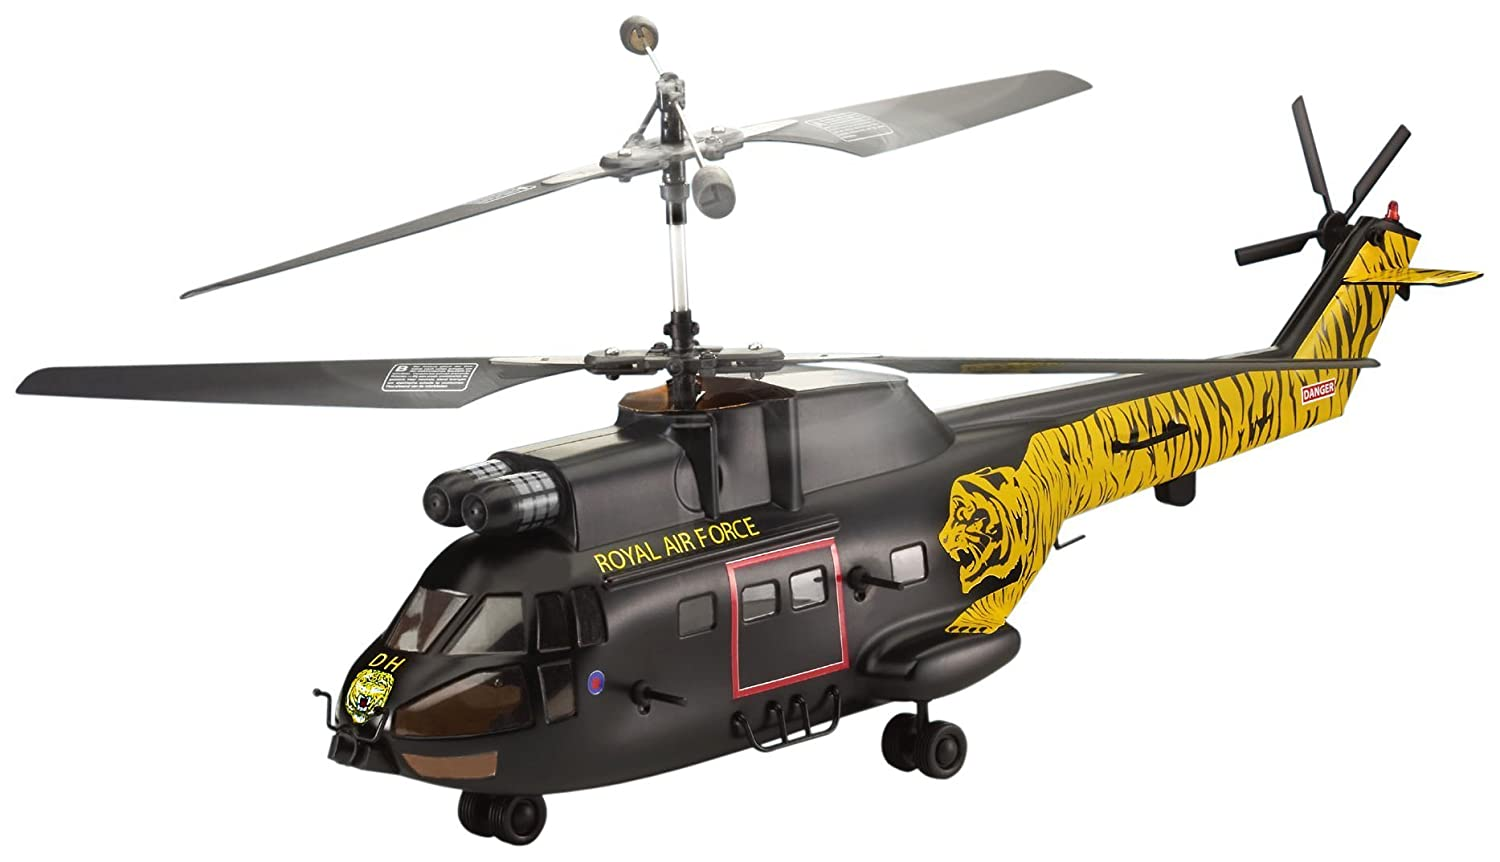 Revell Control 24070 - Ready-to-Fly Helikopter Tigermeet mit 2.4 GHz-Technologie